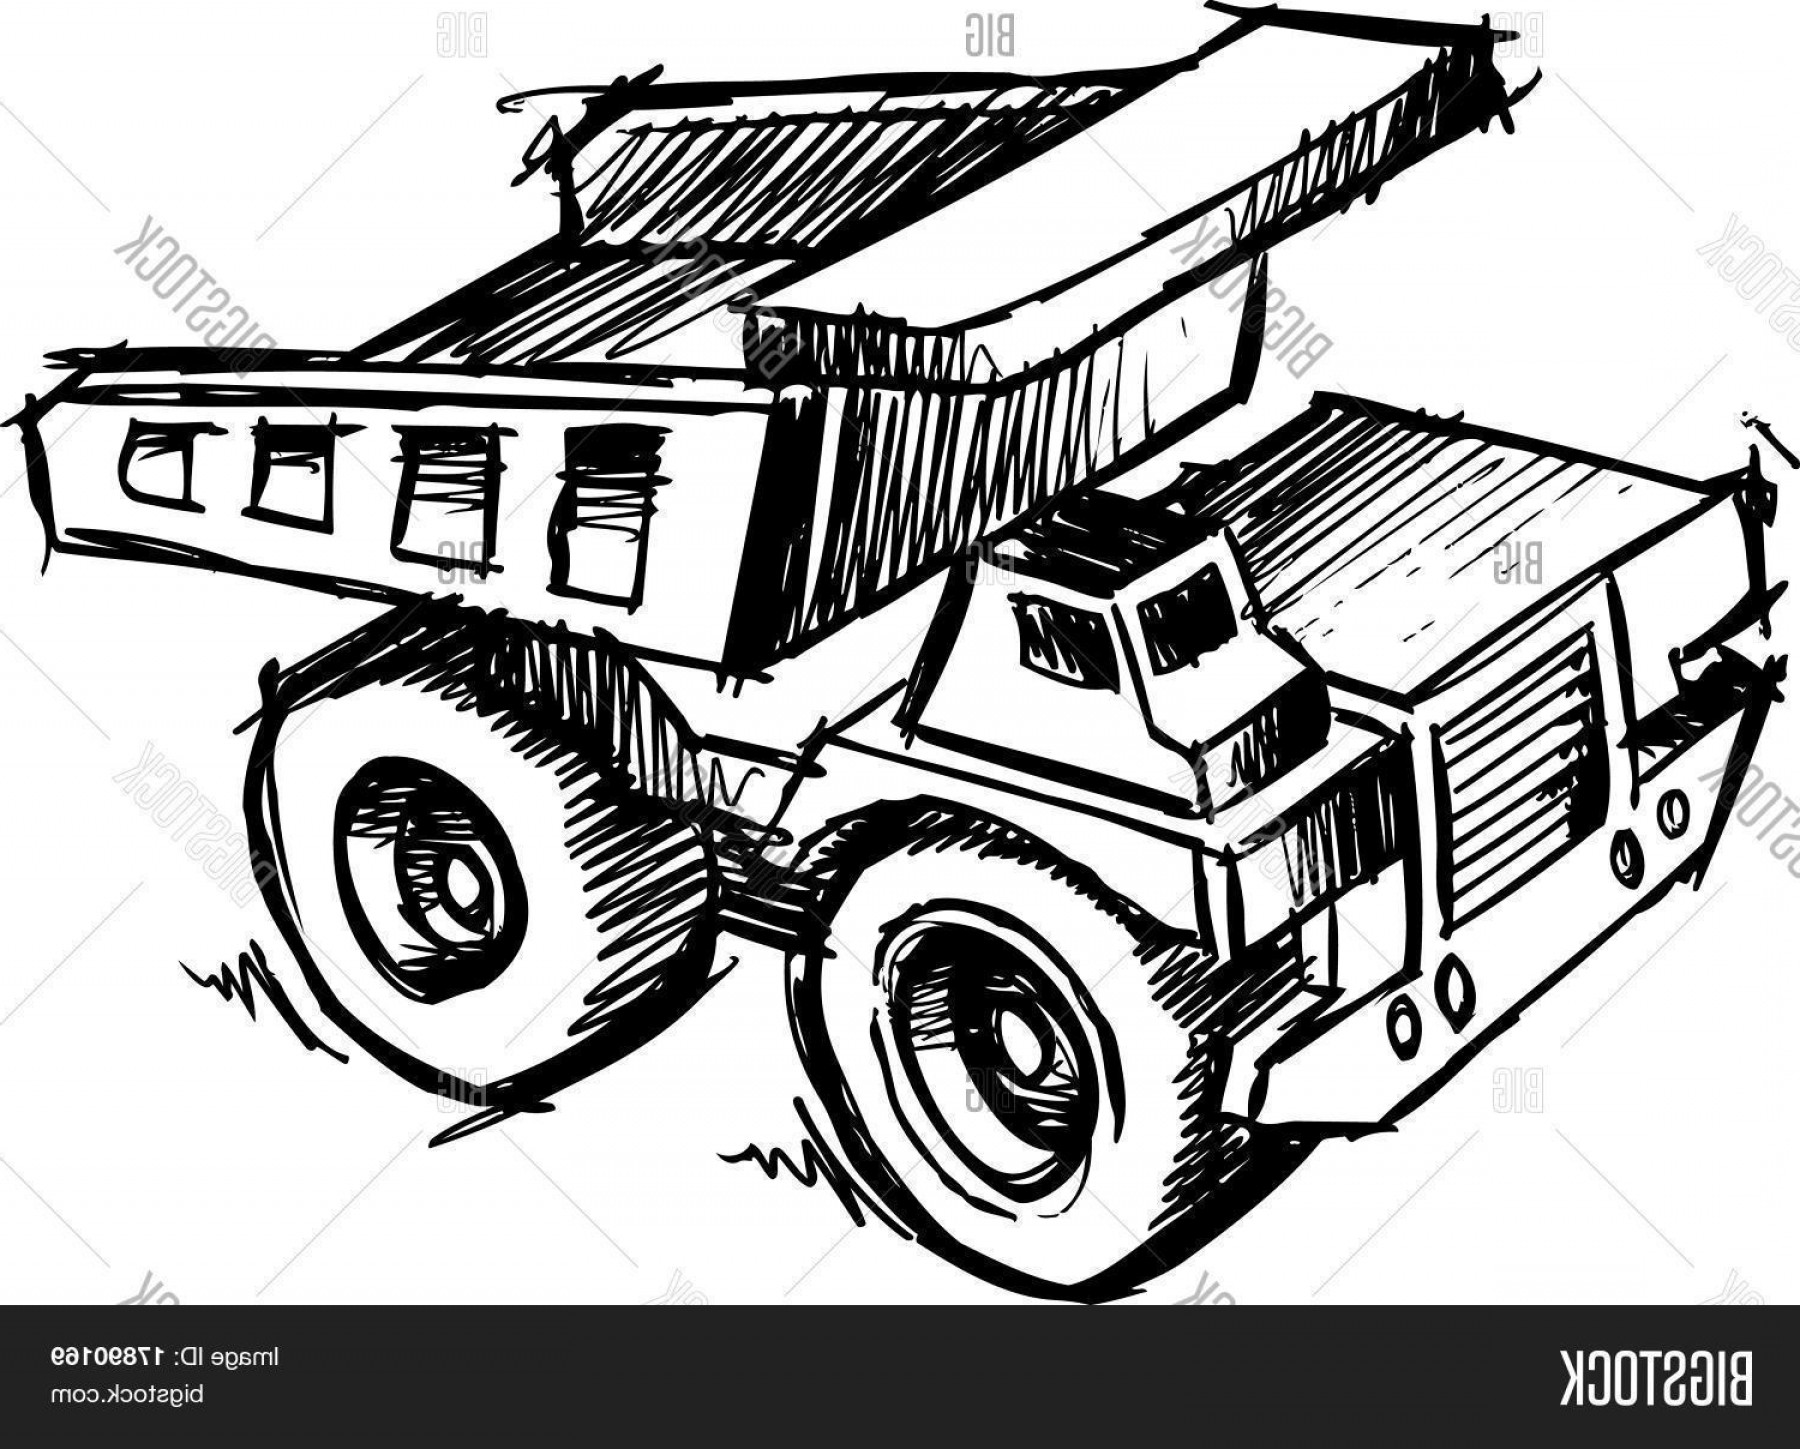 Dump Truck Vector Black And White: Stock Vector Sketch Of A Dump Truck Vector Illustration